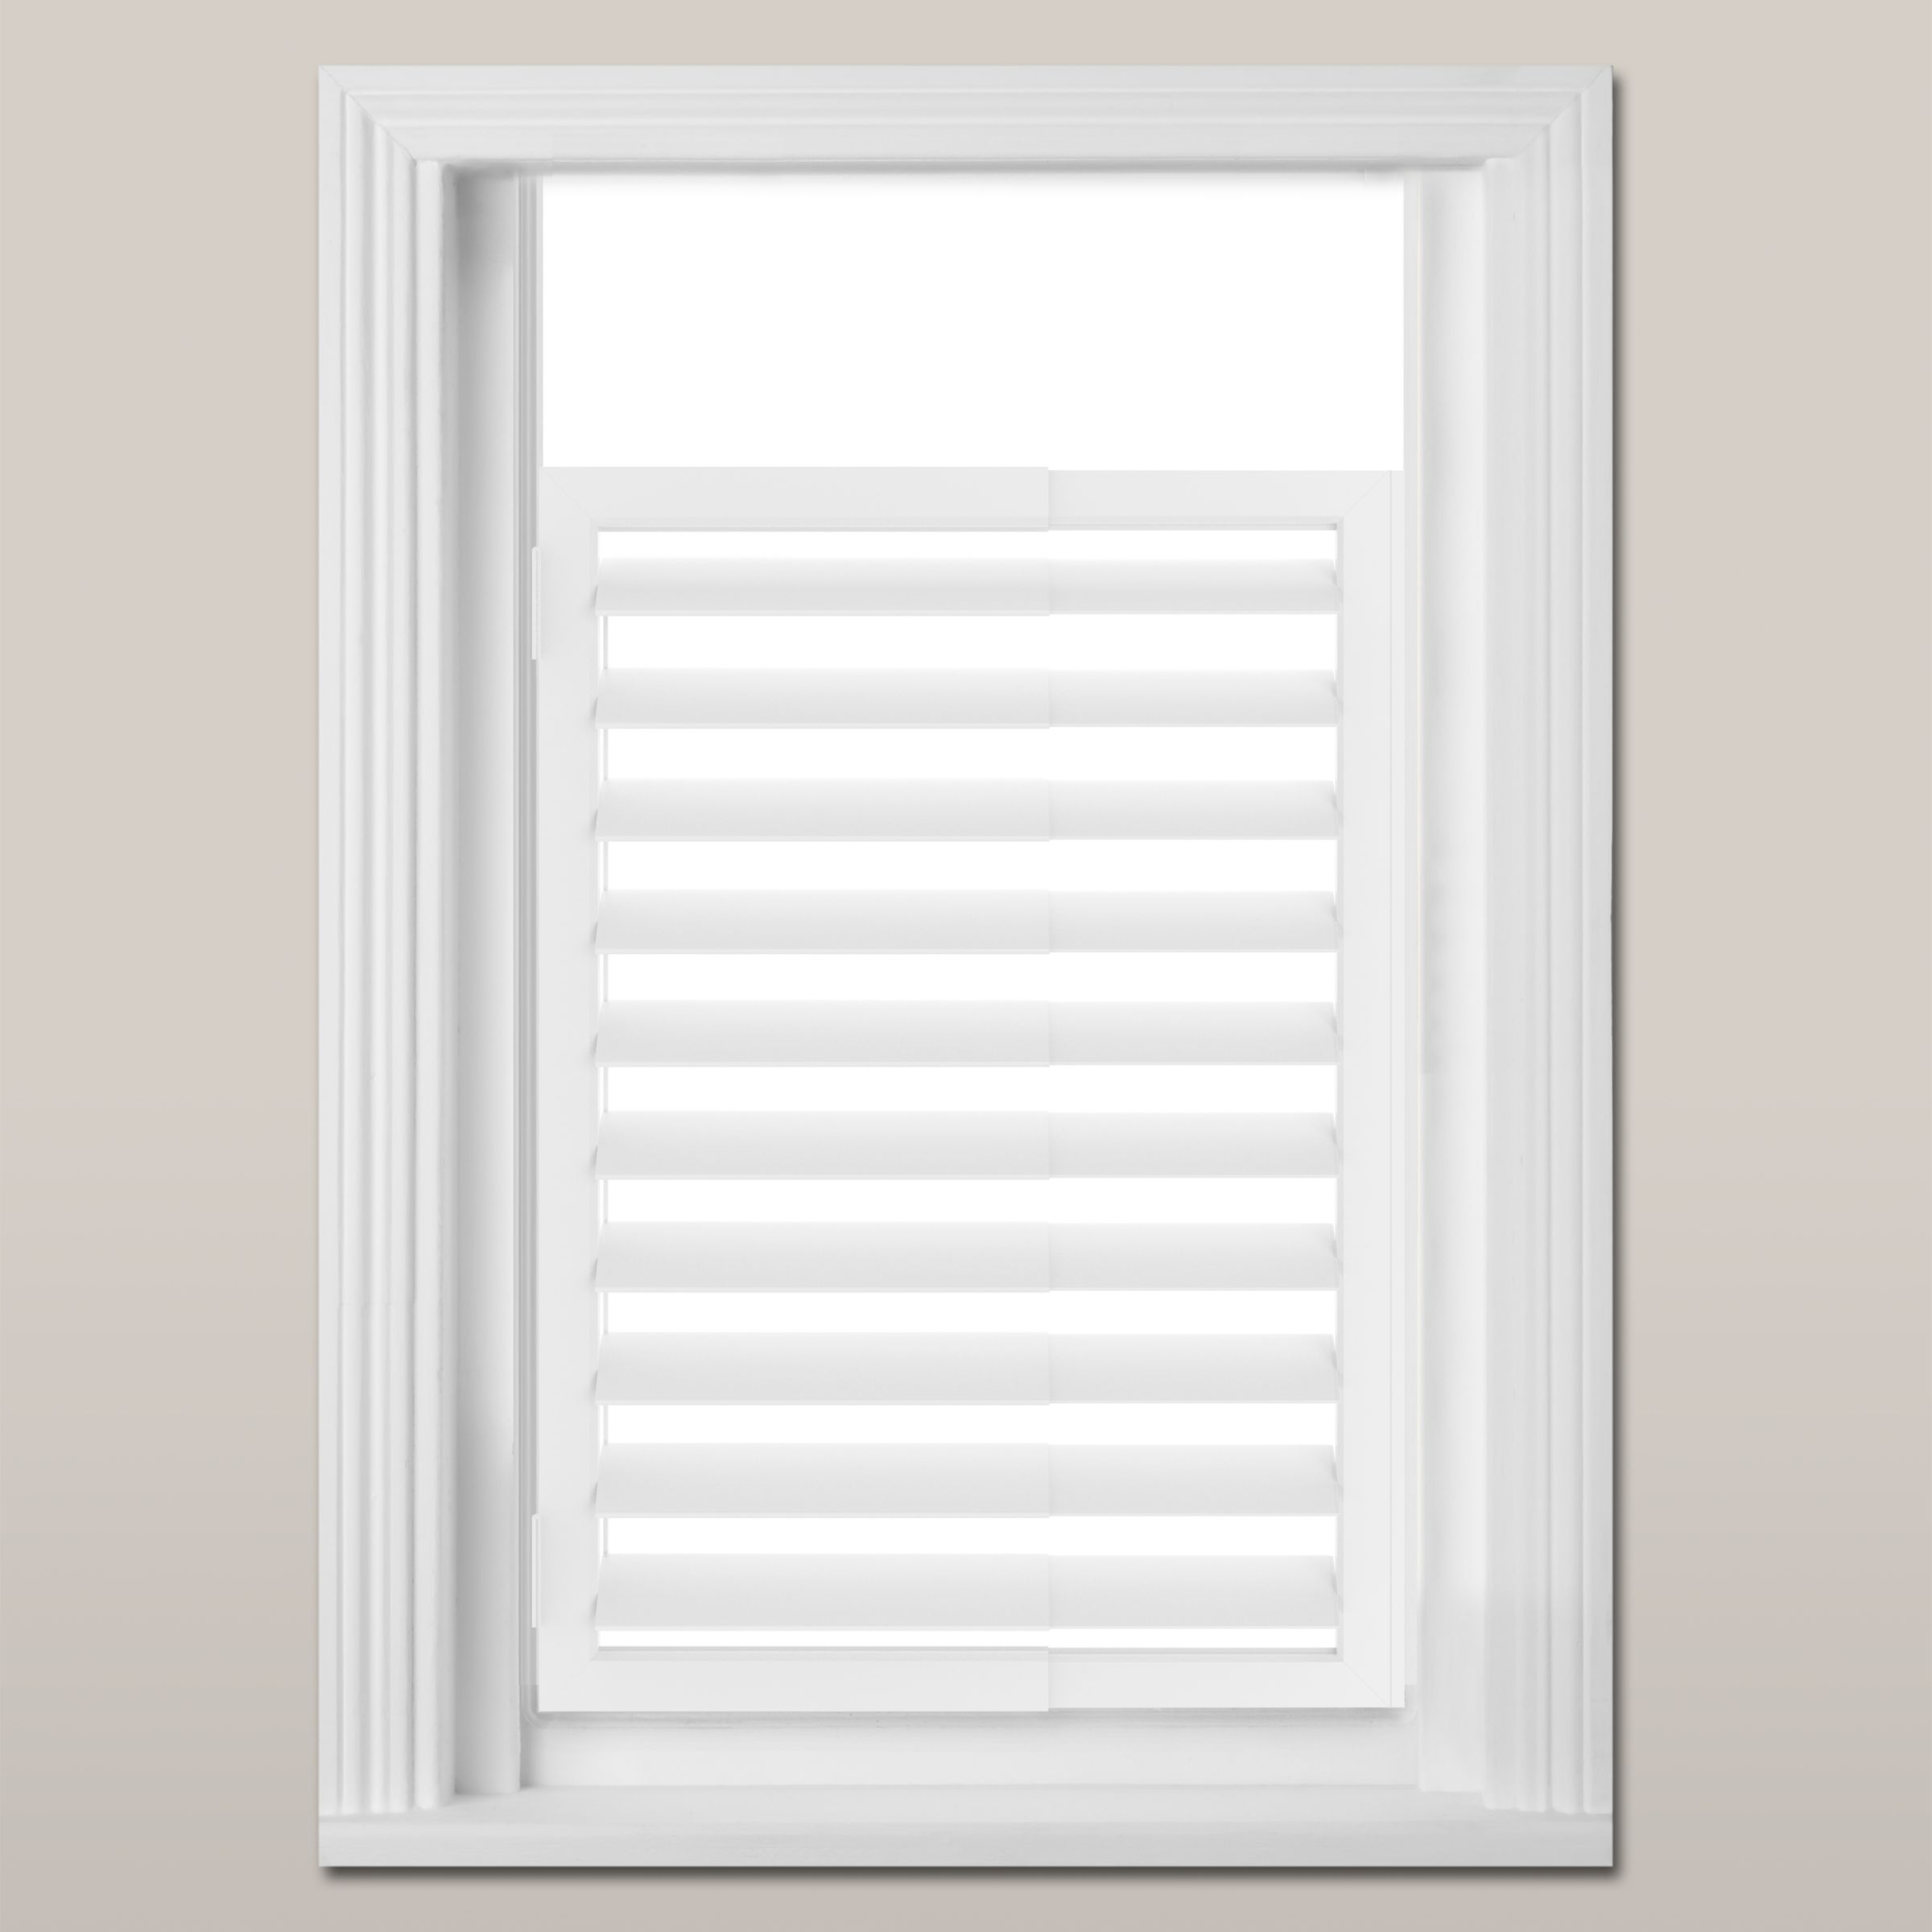 Umbra Expansa Extendable Window Shutter White